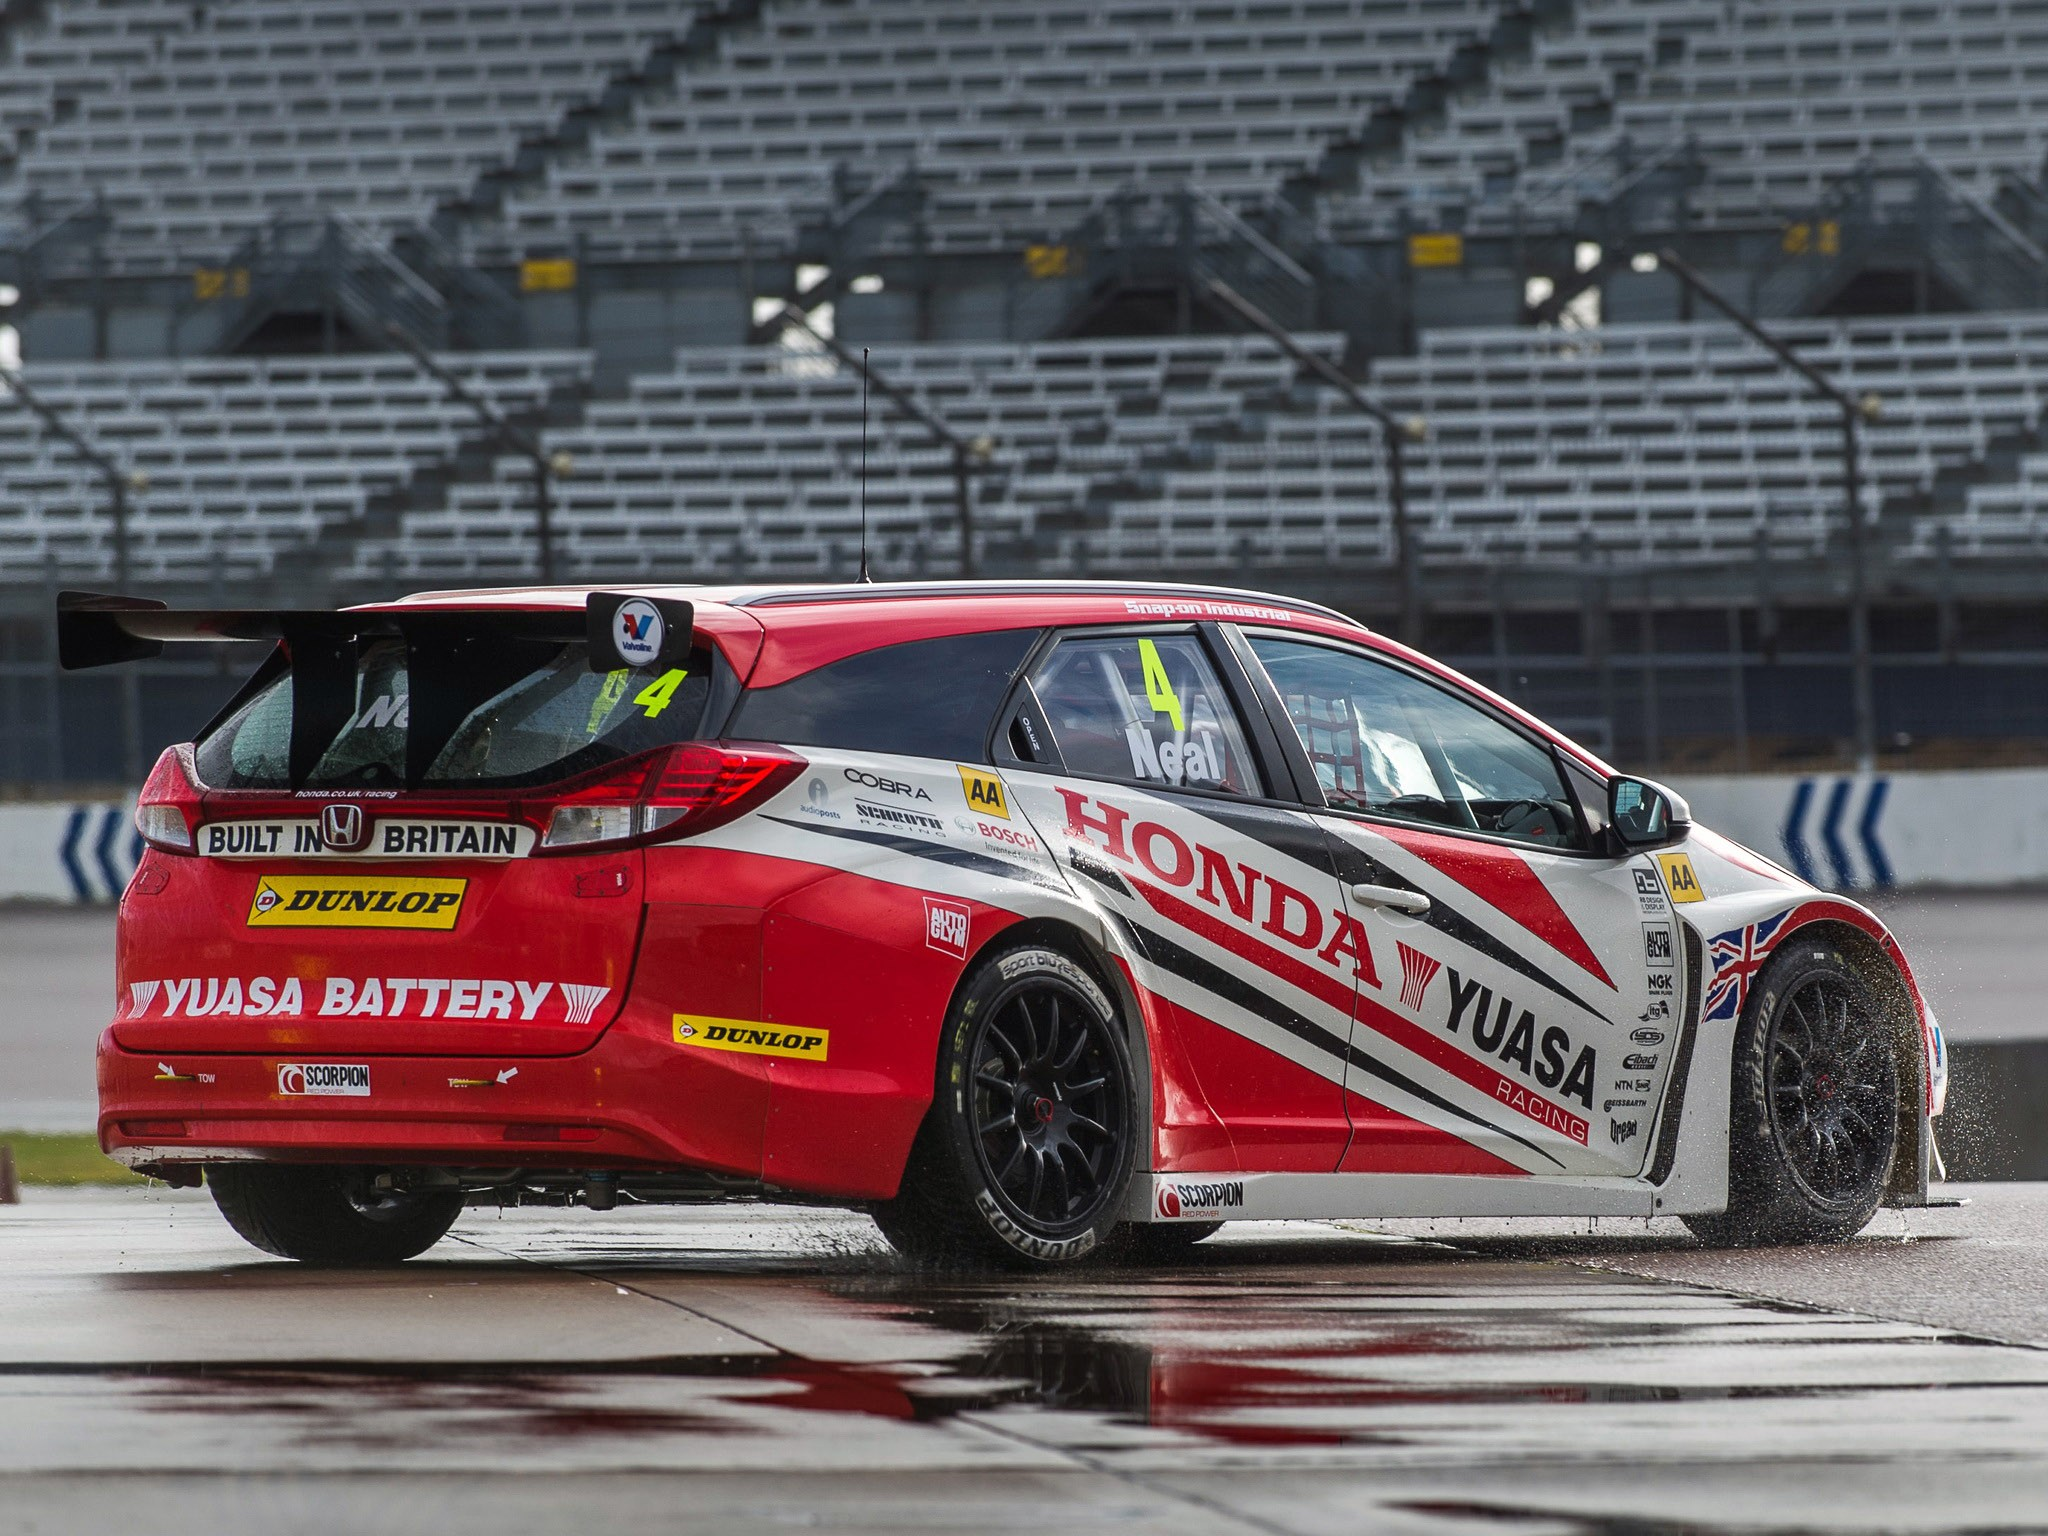 2014 Honda Civic Tourer BTCC